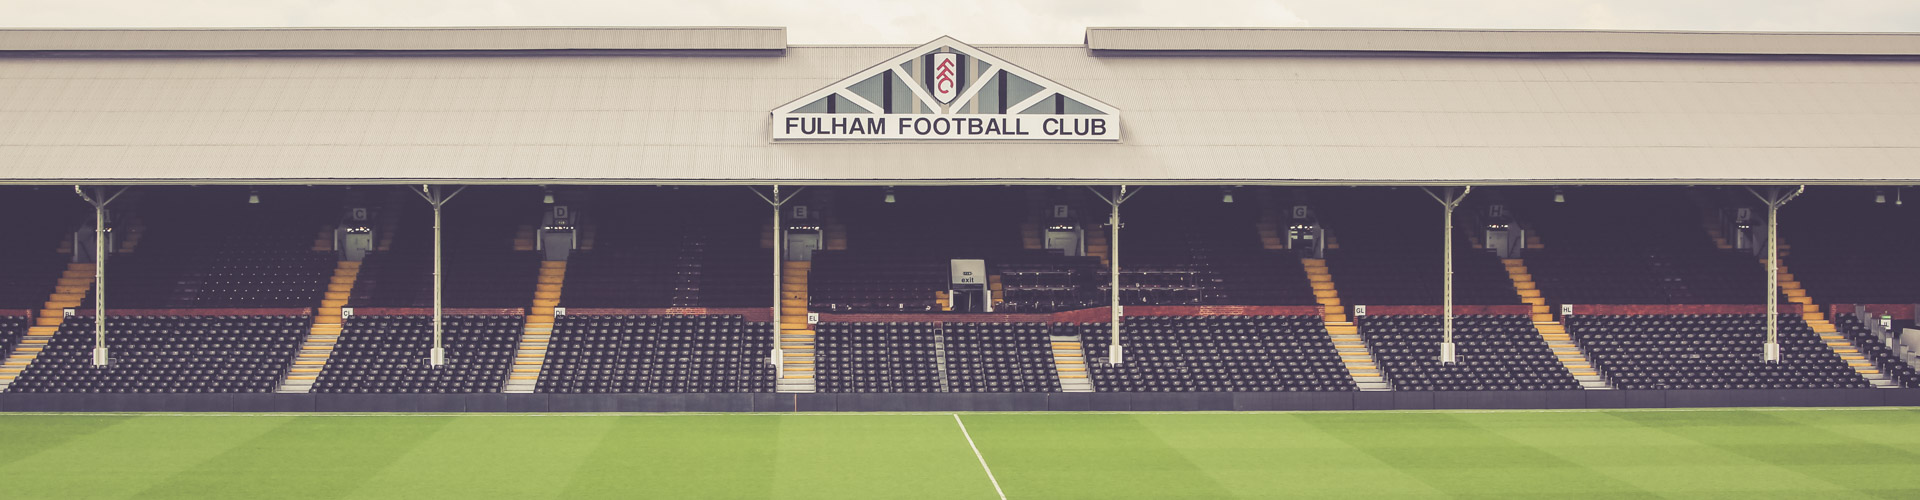 Craven Cottage, Fulham - Header